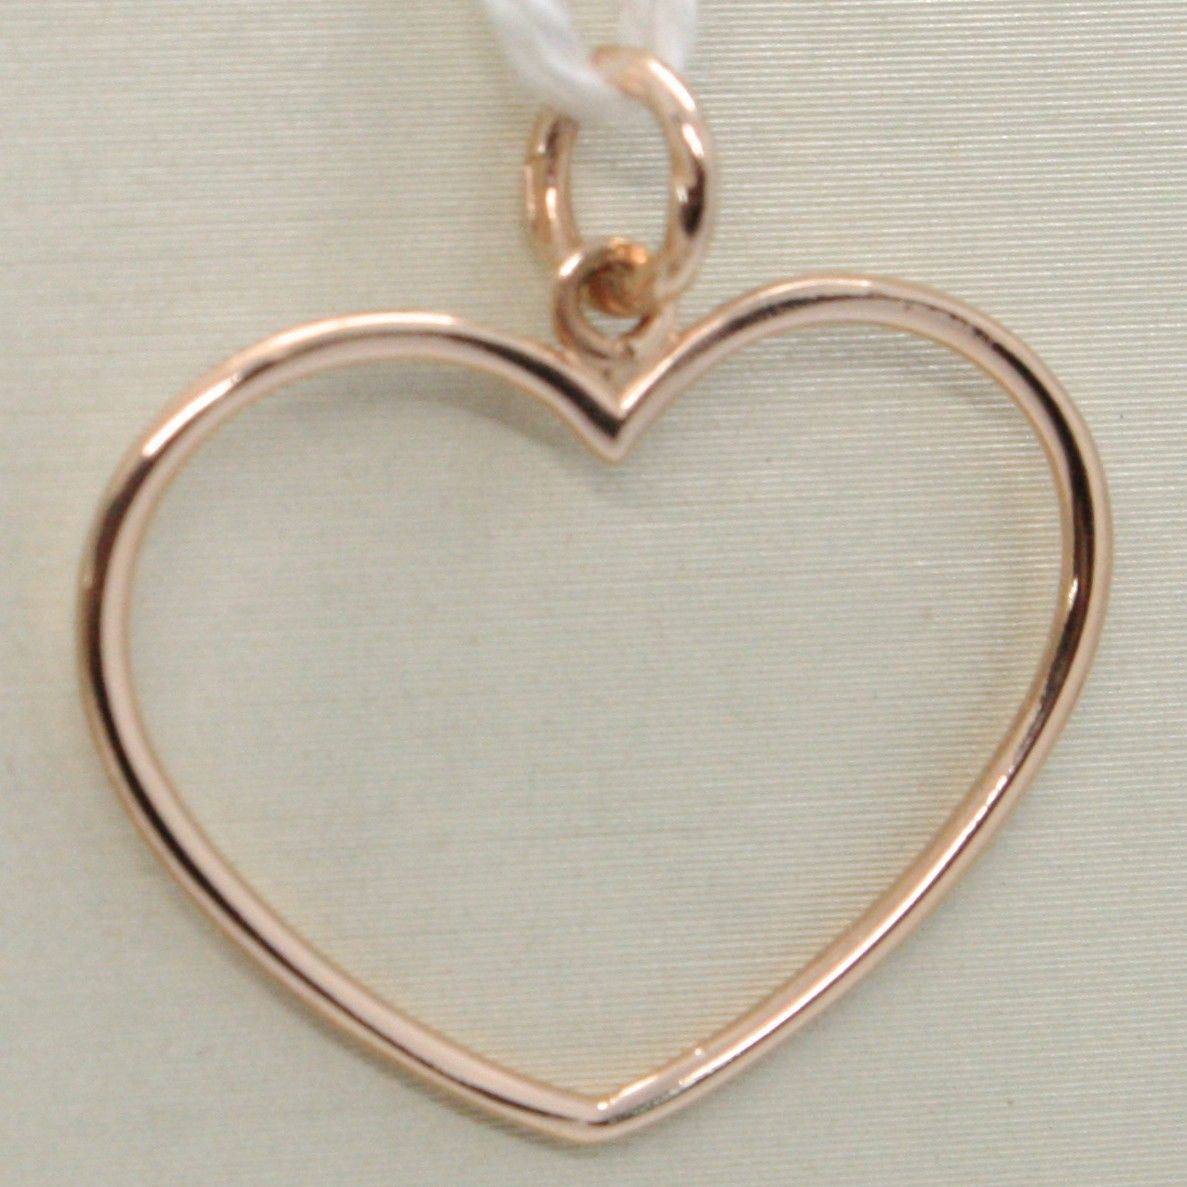 18K ROSE GOLD HEART PENDANT CHARM, 22 MM, LUMINOUS, BRIGHT, MADE IN ITALY